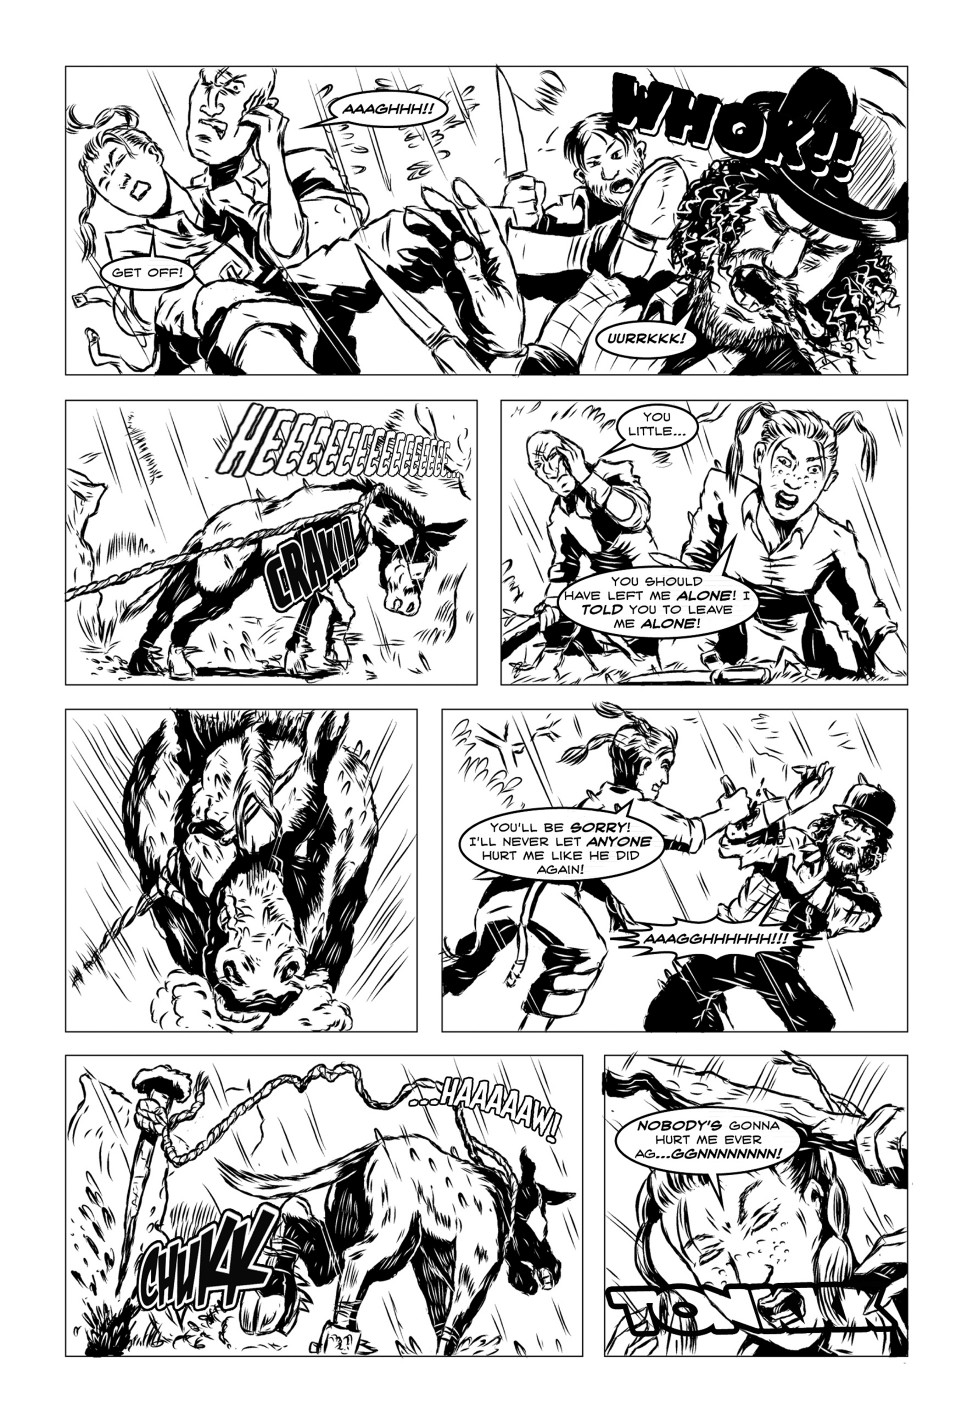 Vanguard! Issue 2, Mammoth-Jack!, page 4